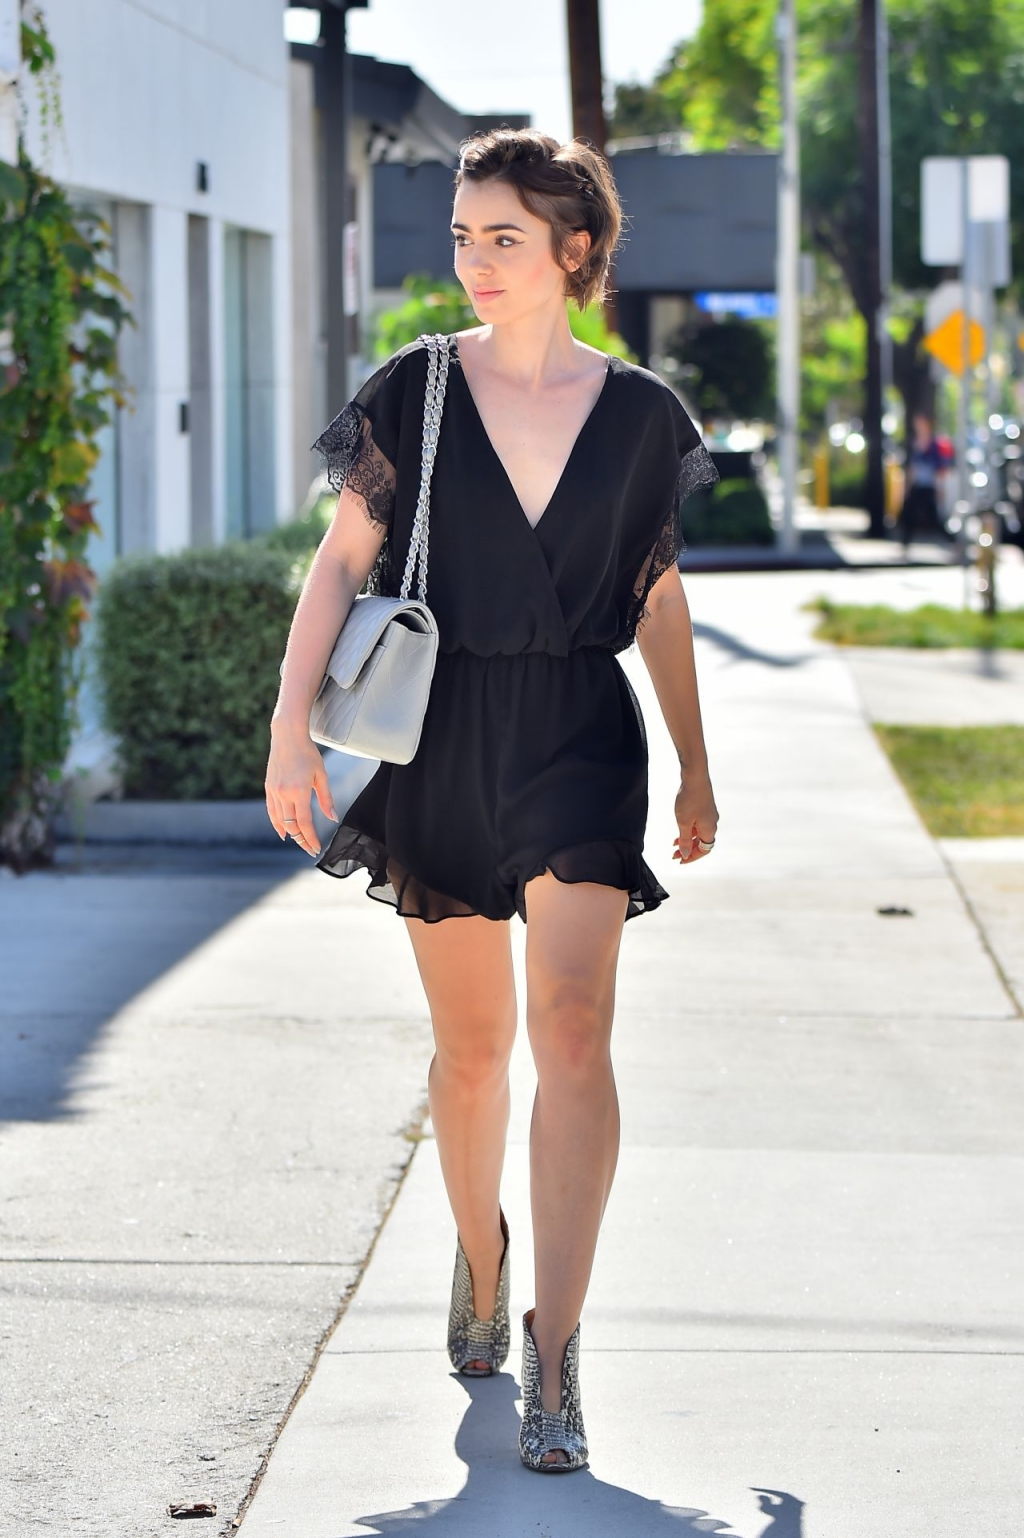 lily-collins-leggy-in-mini-dress-west-hollywood-october-2015_10